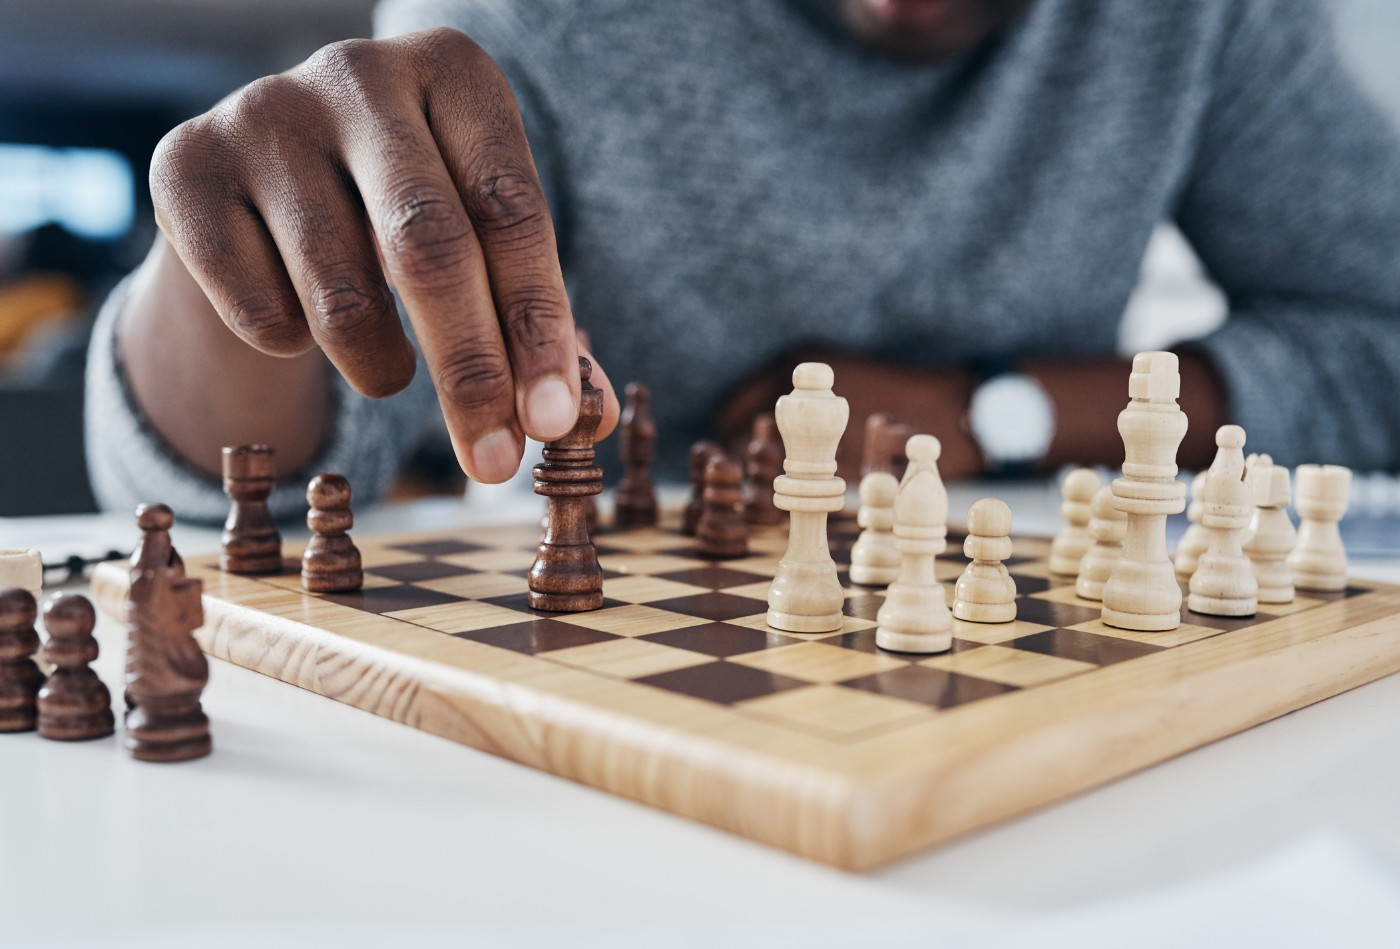 https://tickertapecdn.tdameritrade.com/assets/images/pages/md/chess board: probability analysis